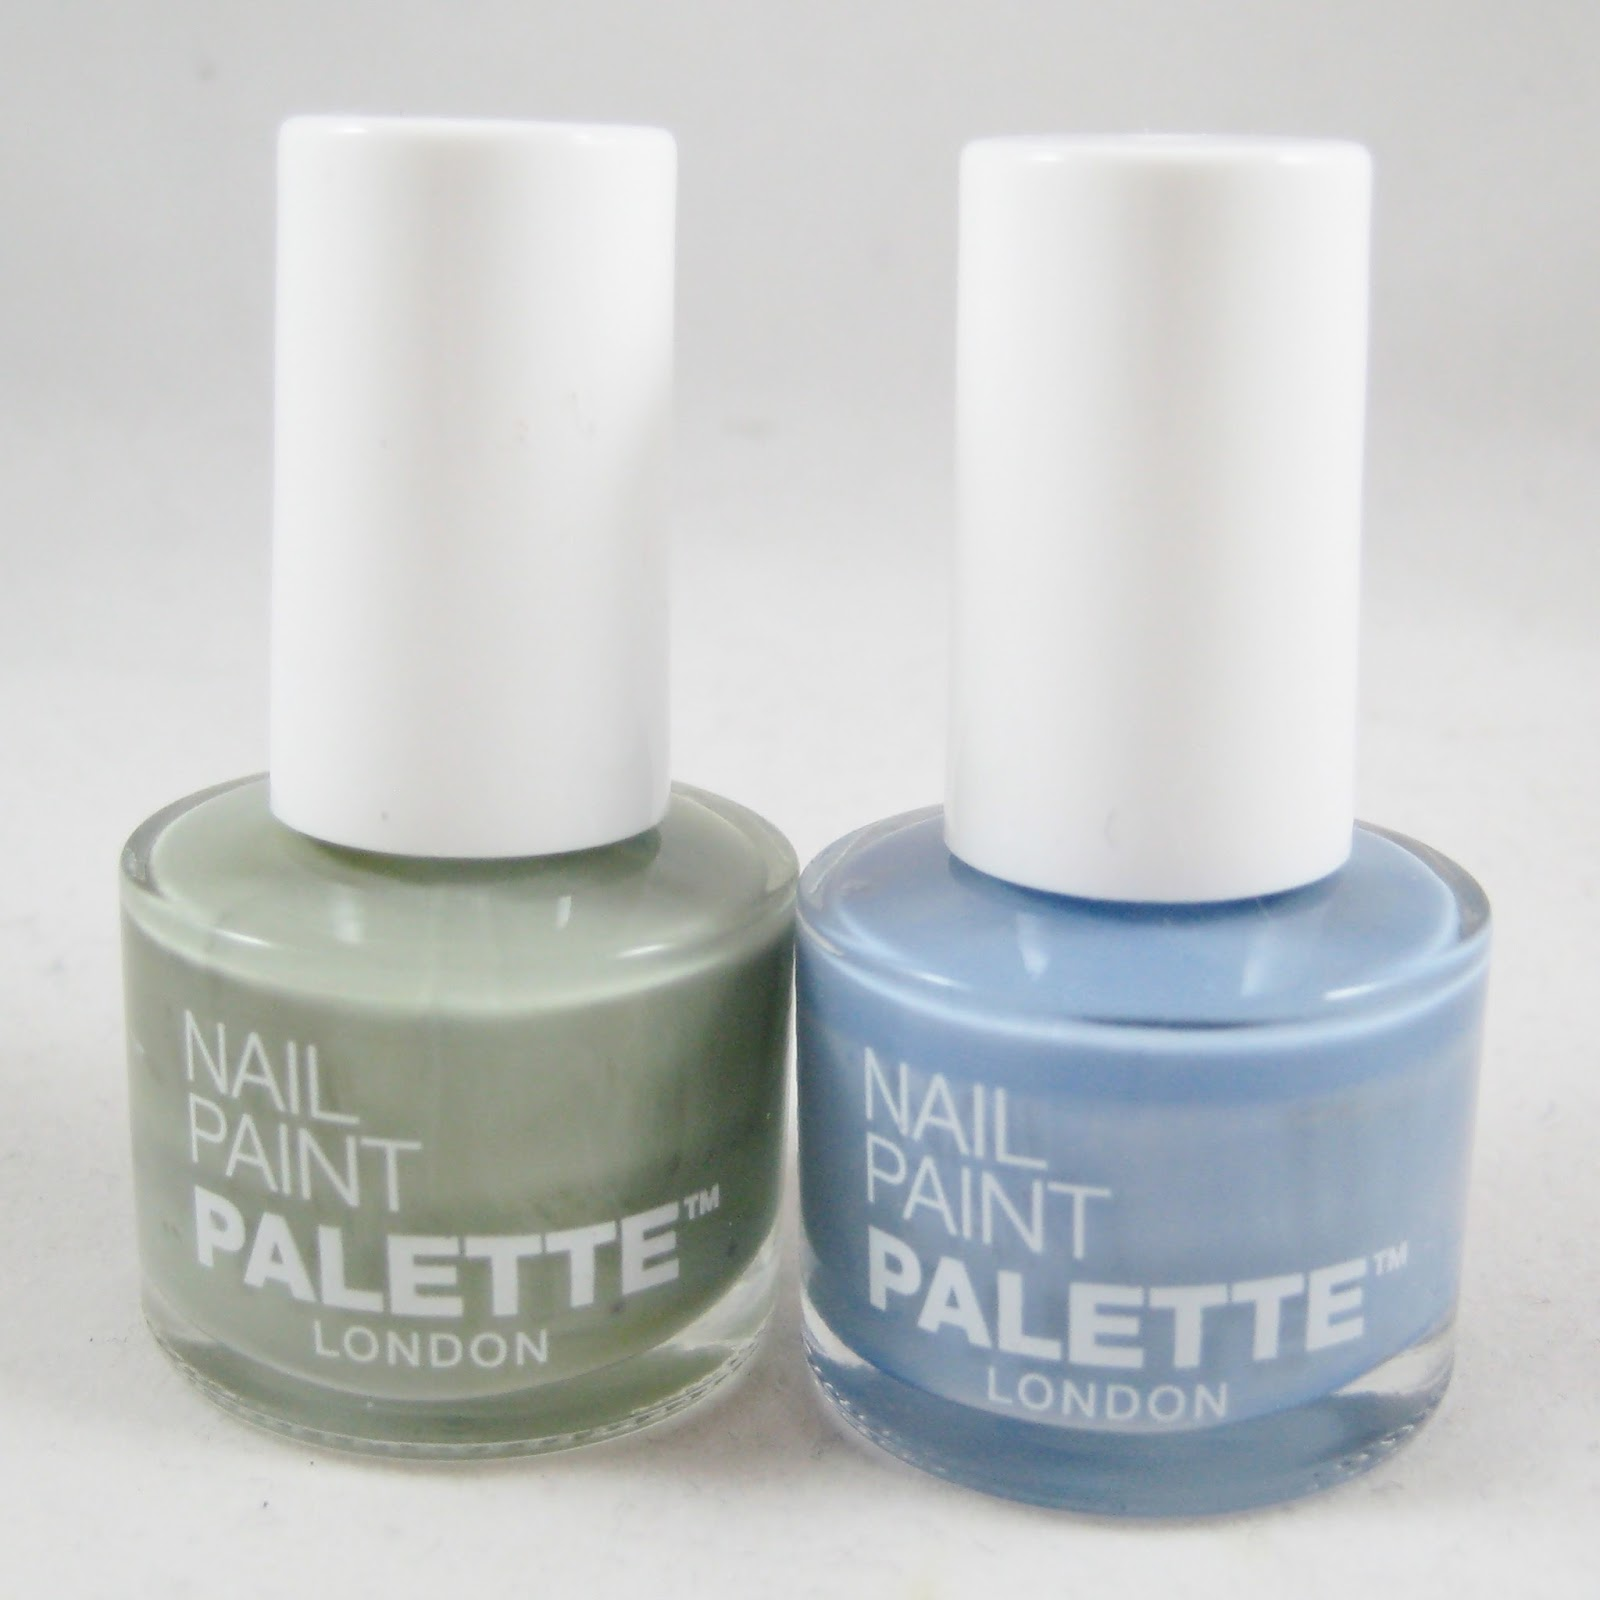 Wanted To Test Out Their Awesome Sounding Create Your Own Nail Paint Collection Fortunately They Forgave Us And Sent One Of The Kits Above